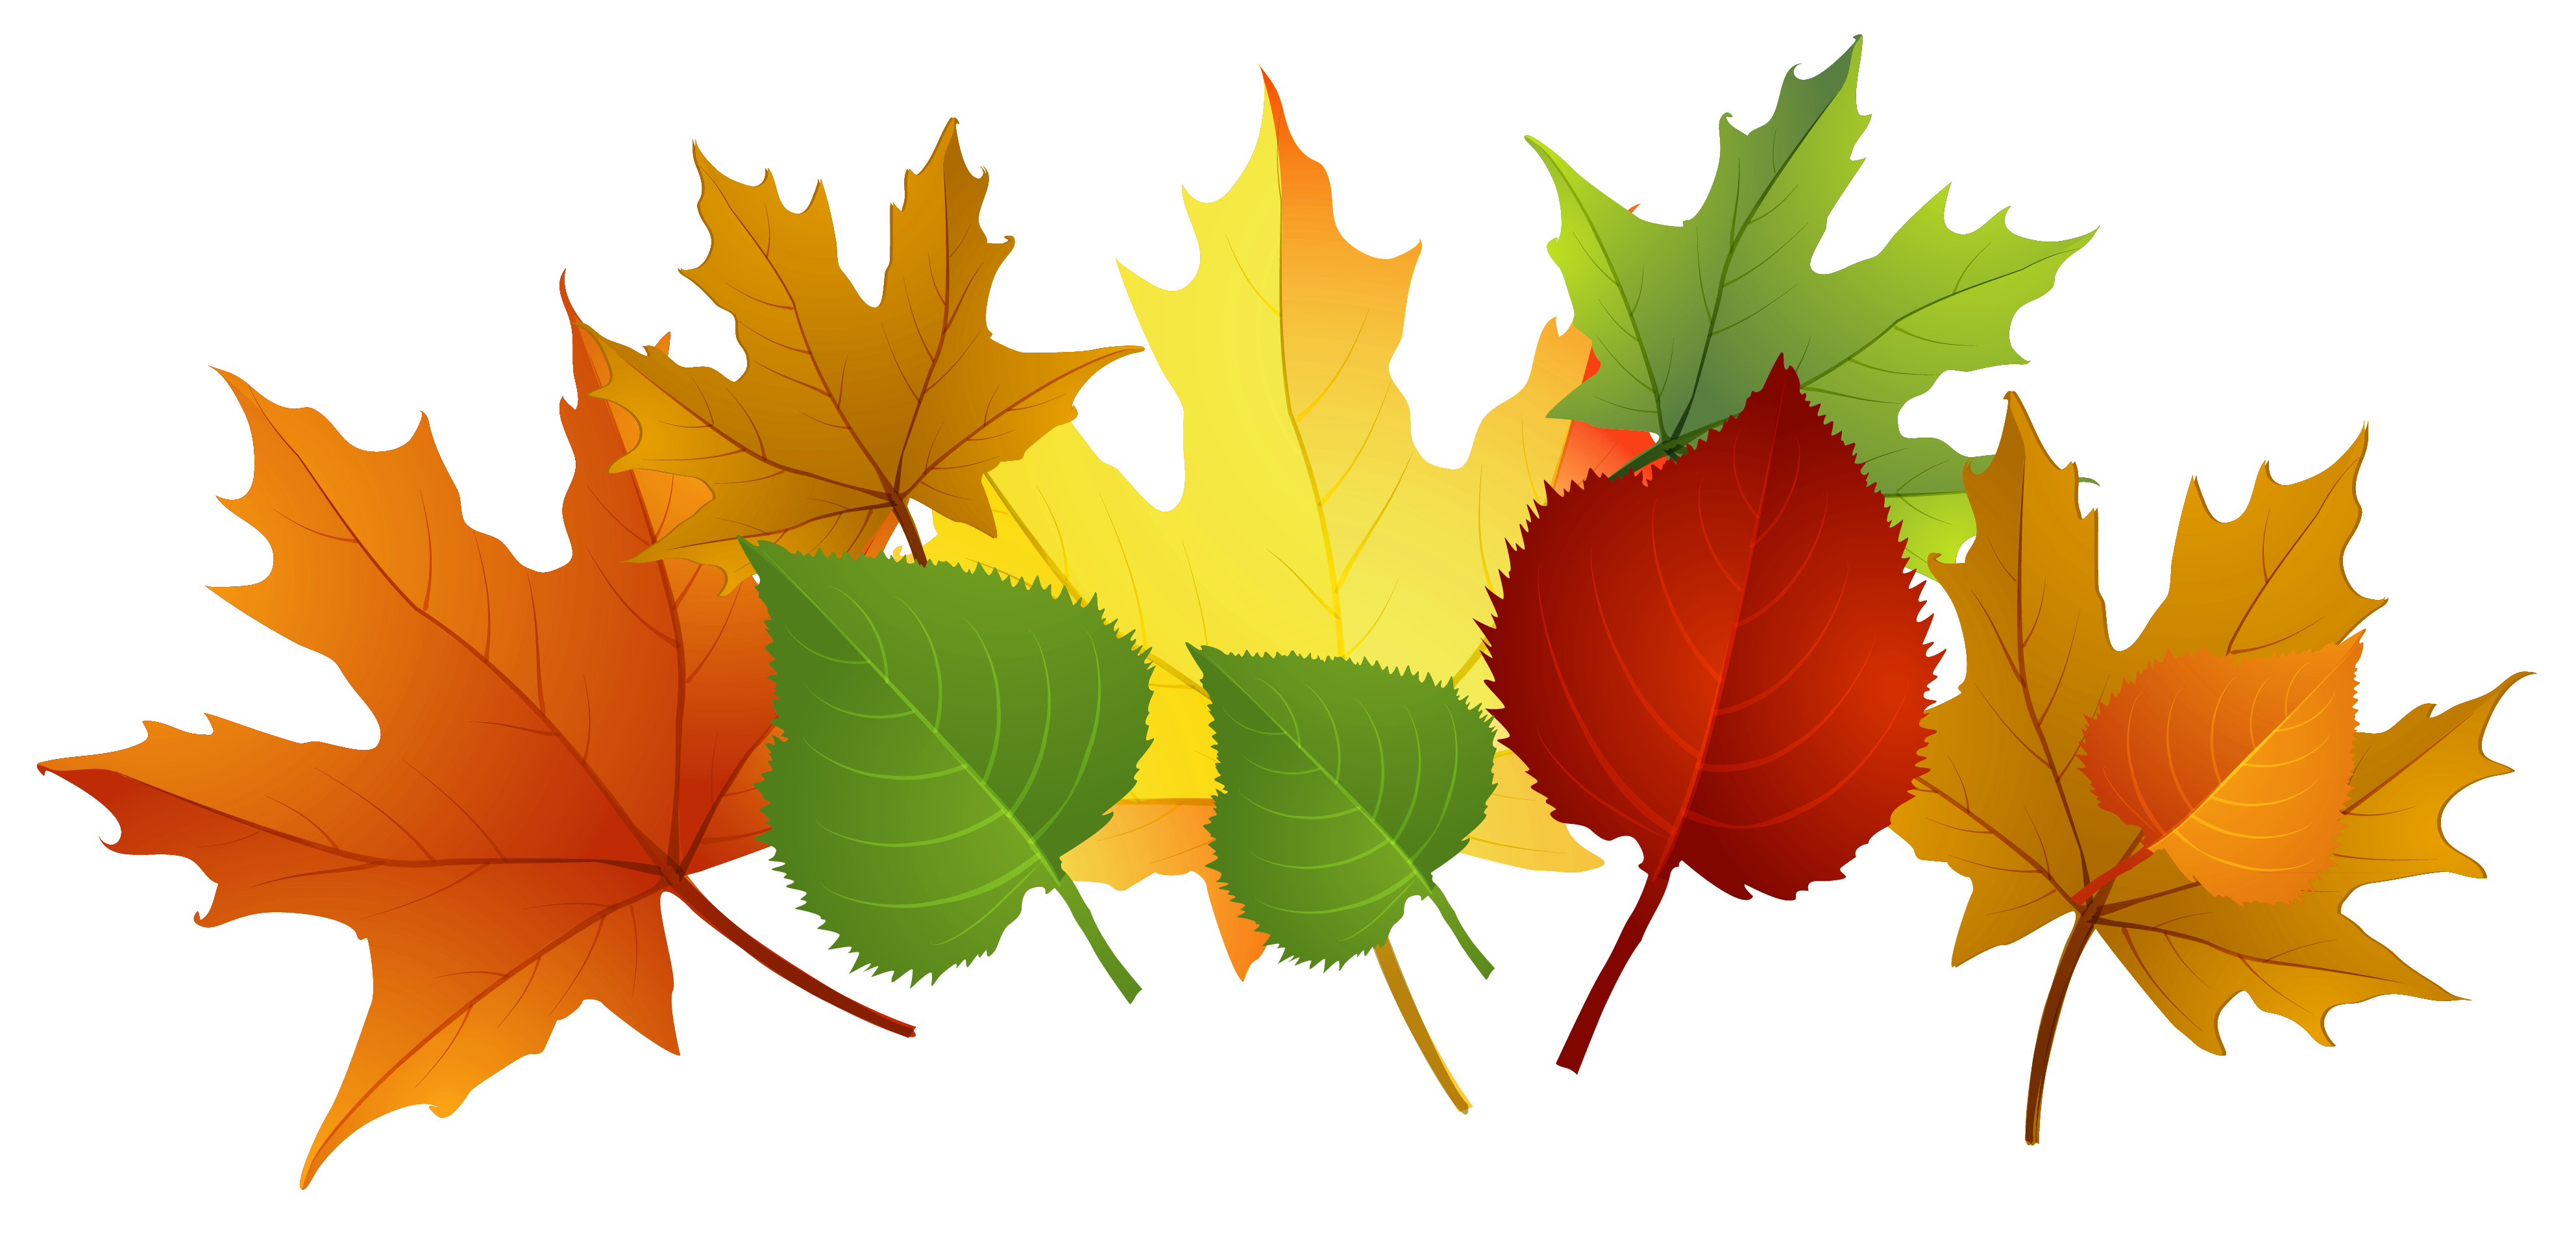 Fall Break Clip Art - Cliparts.co